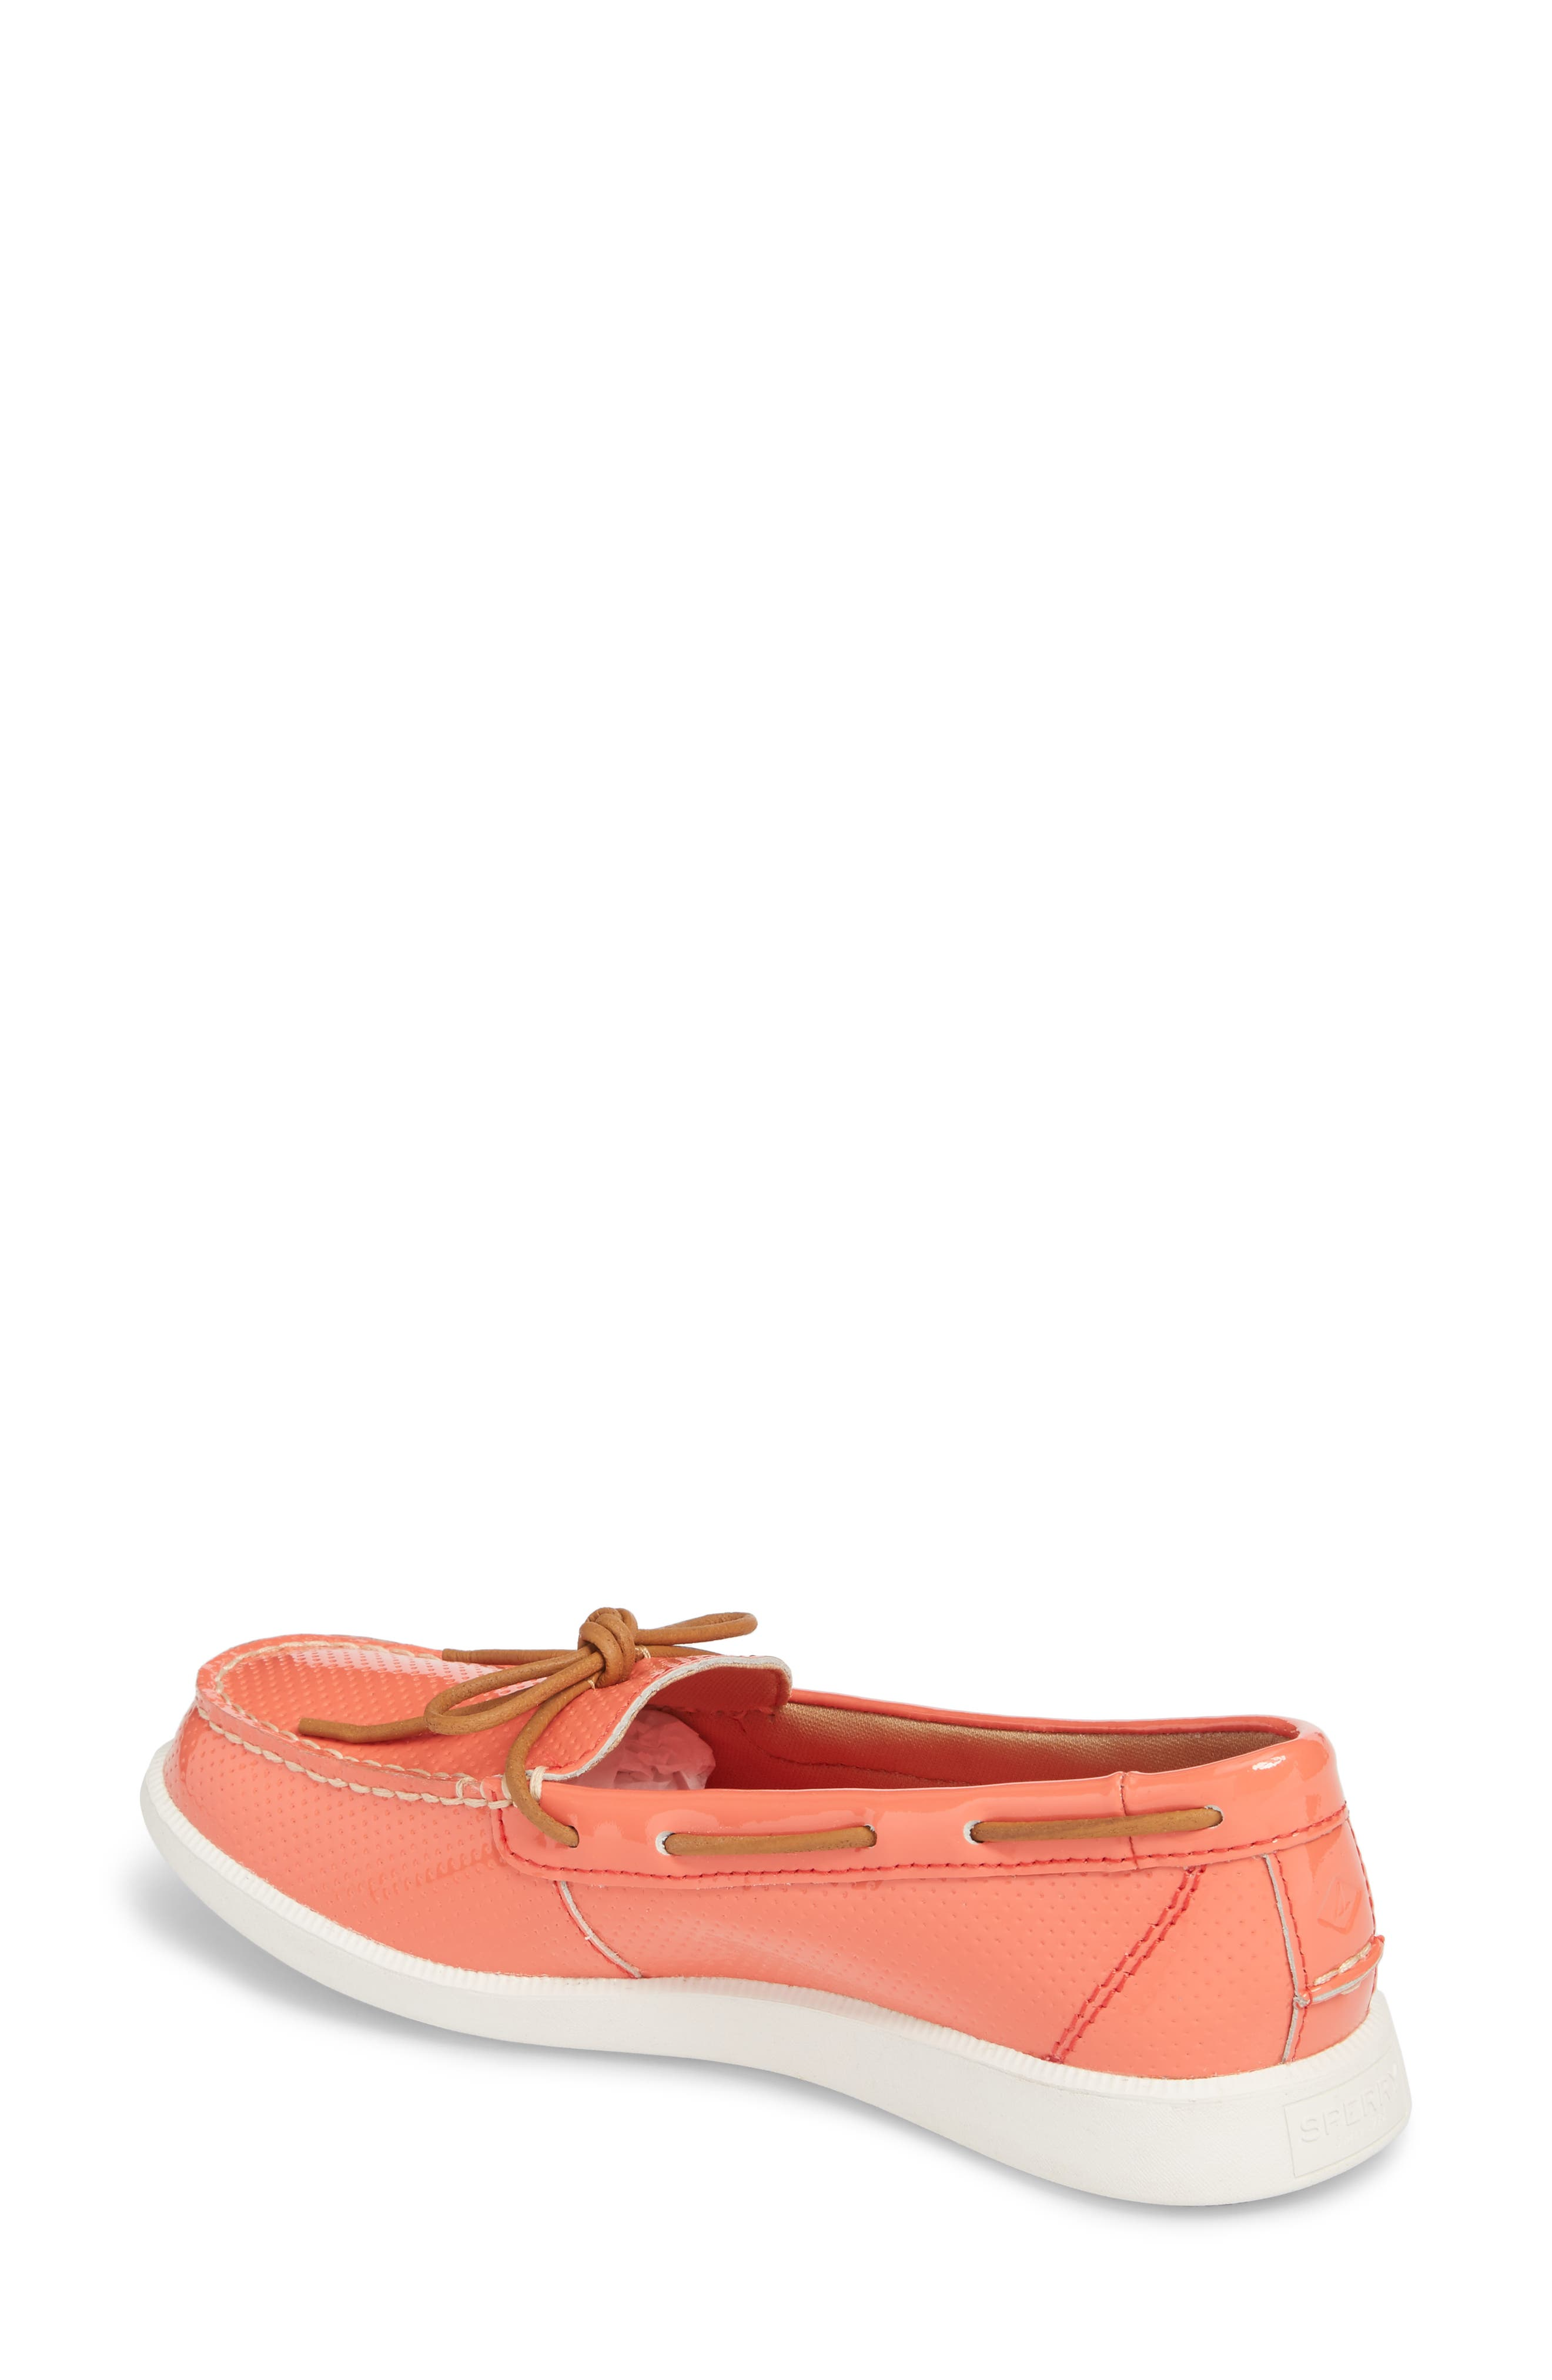 Oasis Boat Shoe,                             Alternate thumbnail 2, color,                             Coral Patent Leather